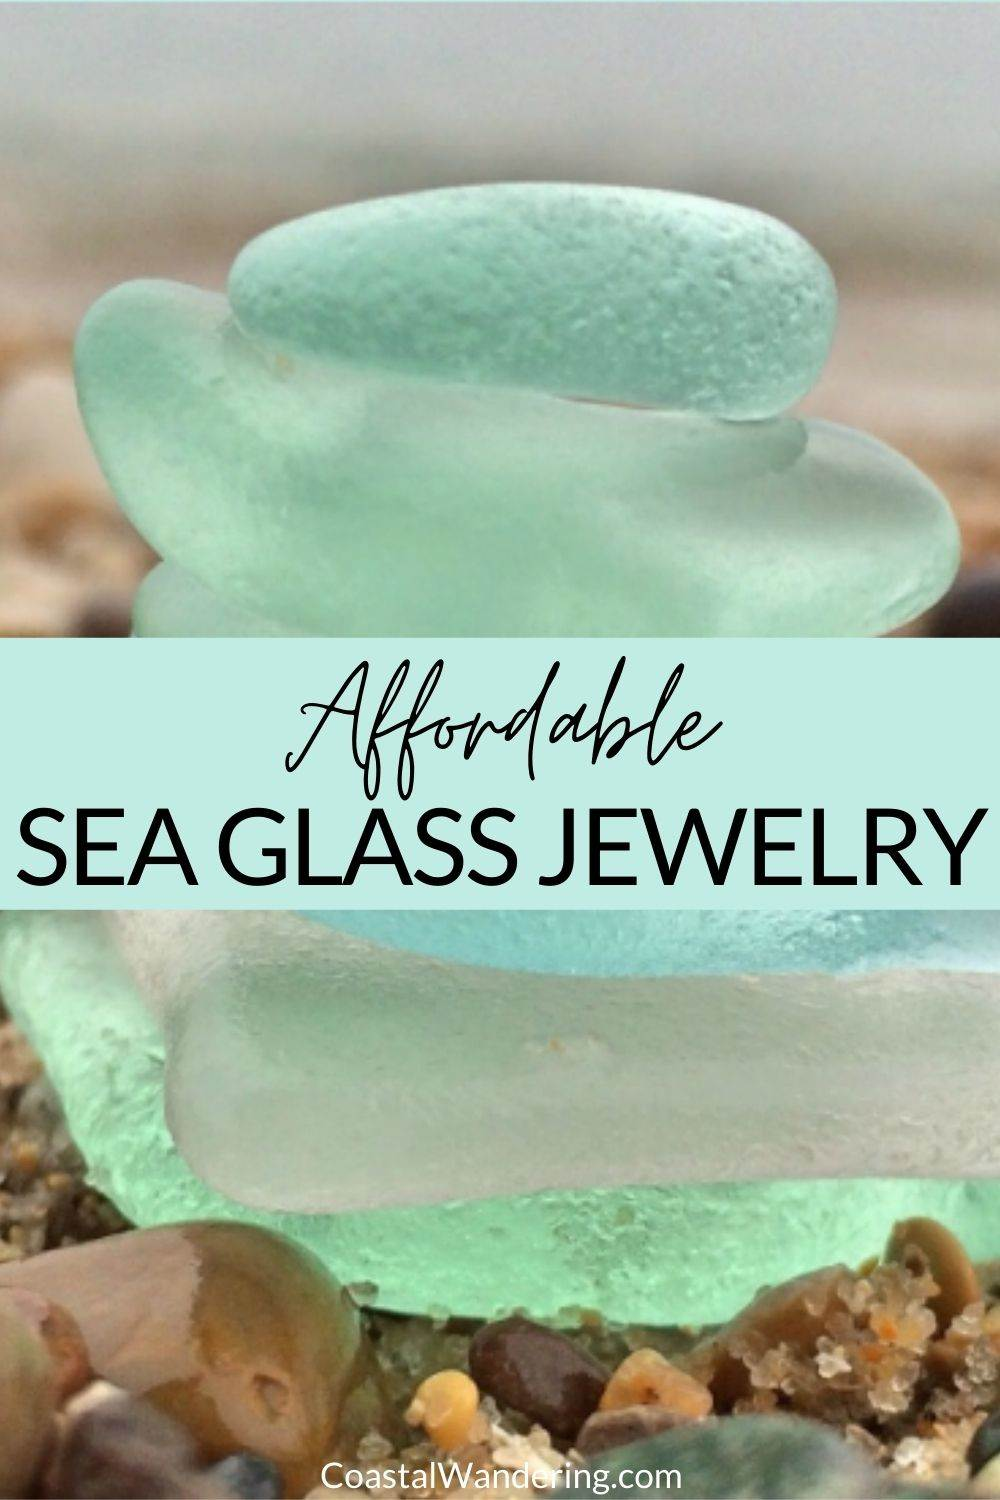 10 Amazing Sea Glass Jewelry Gift Ideas (That Are Affordable!)